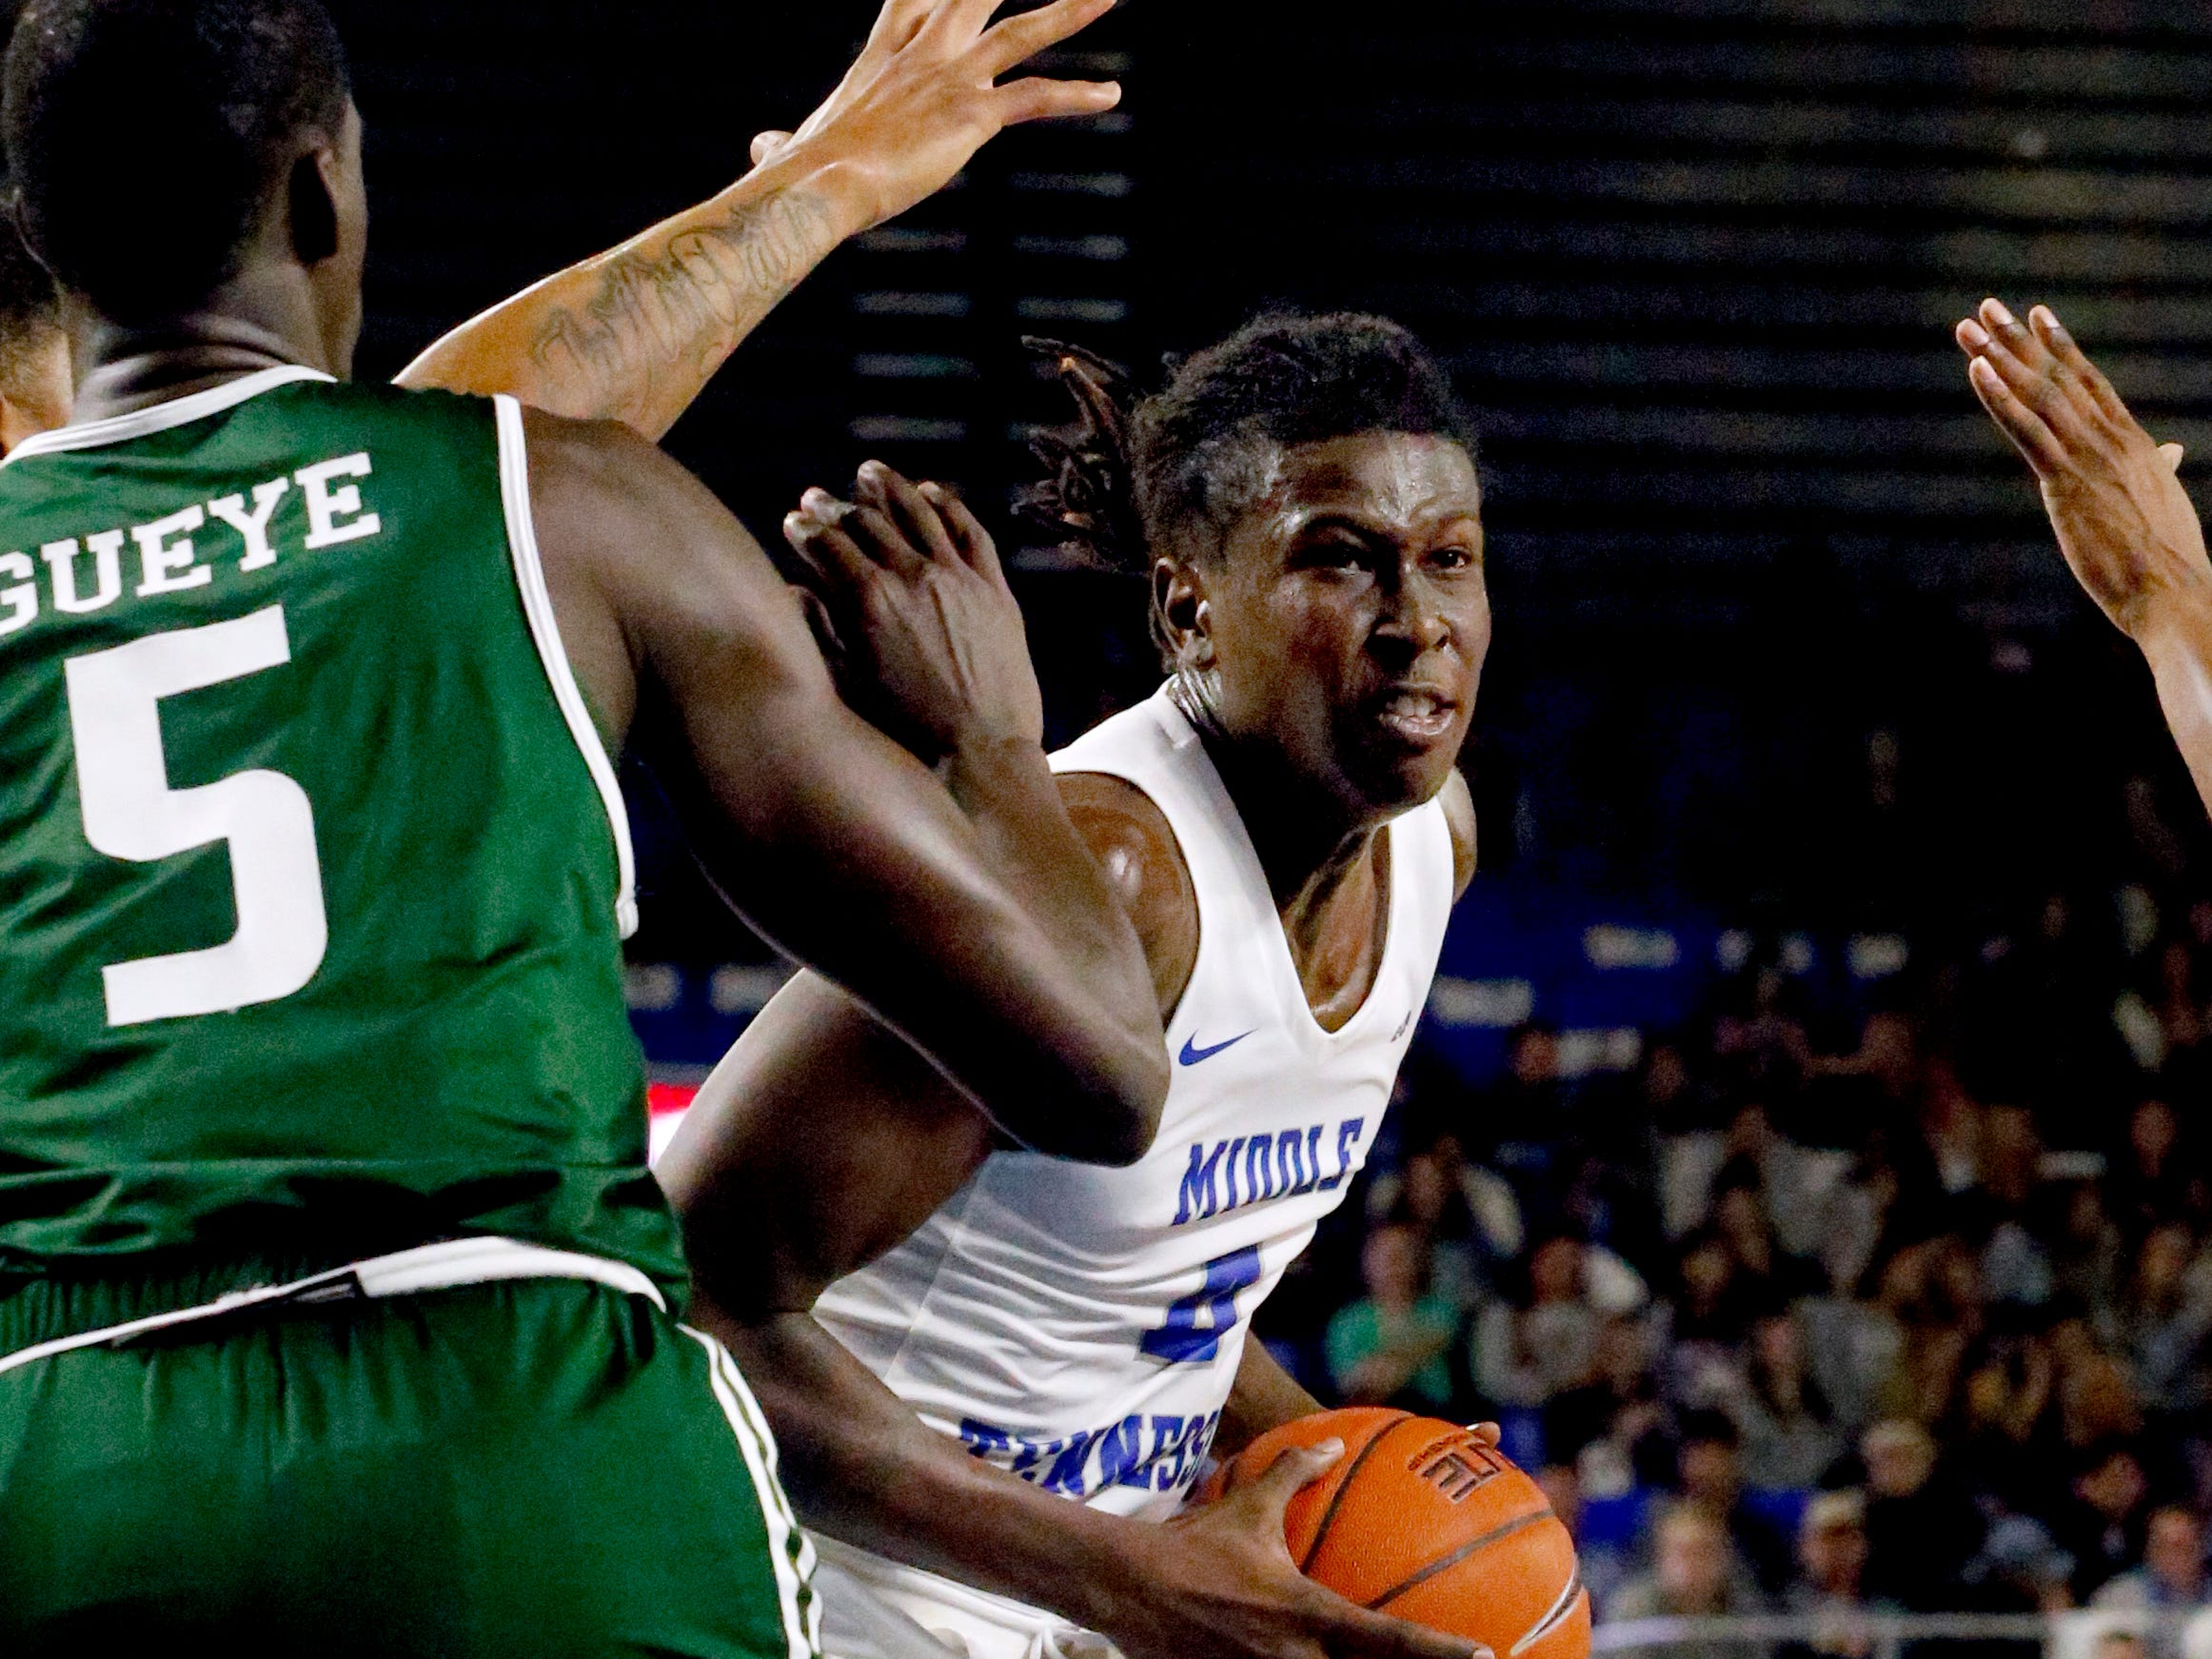 MTSU forward James Hawthorne (4) goes up for a shot as he is guarded by UAB's forward Lewis Sullivan (23) and UAB's forward Makhtar Gueye (5) on Wednesday Jan. 30, 2019.